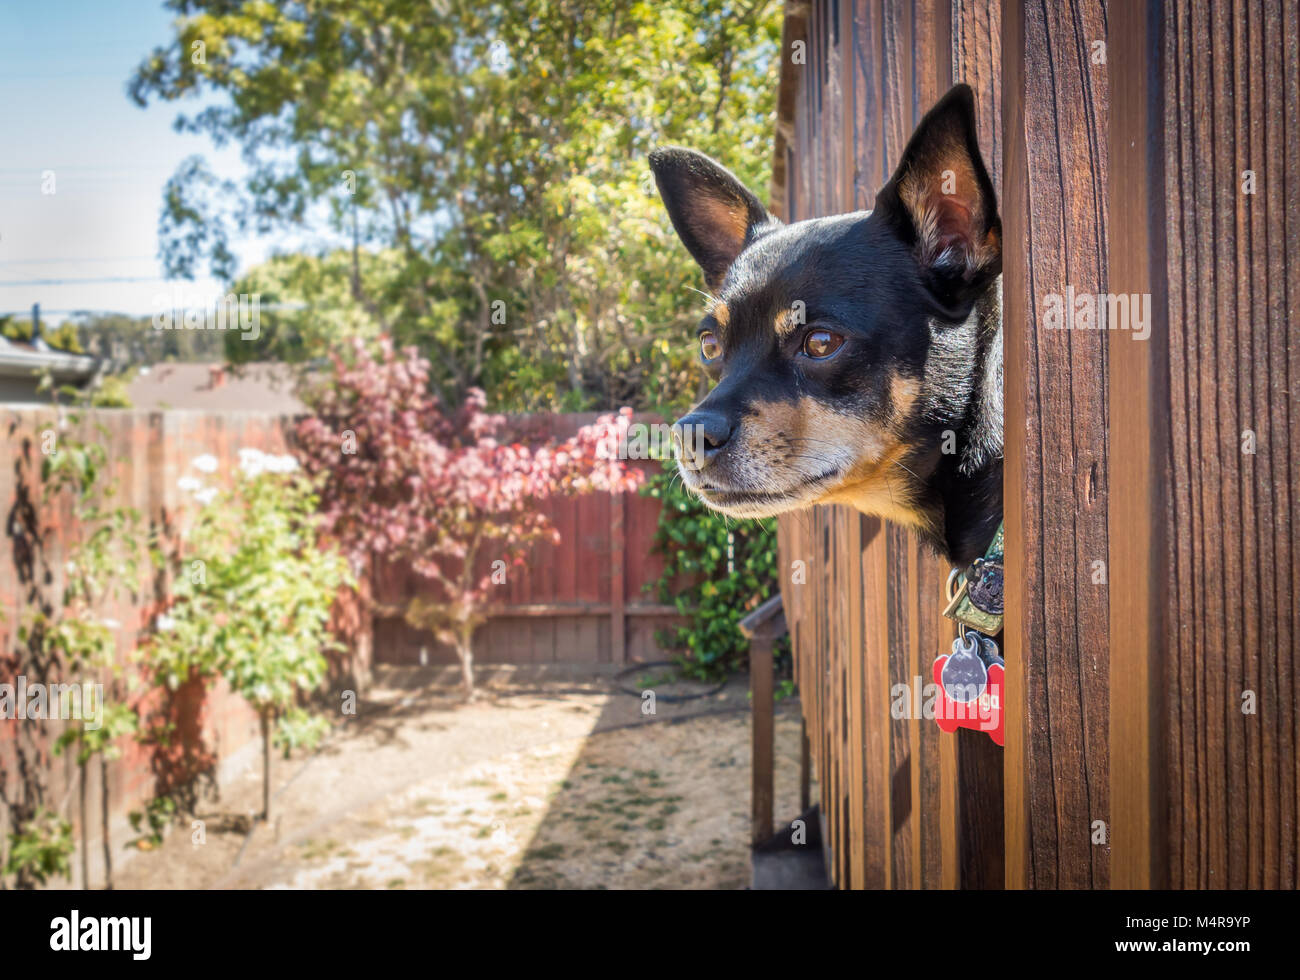 An adult Miniature Pinscher poking his head out from a wooden deck, staring off into the distance. - Stock Image